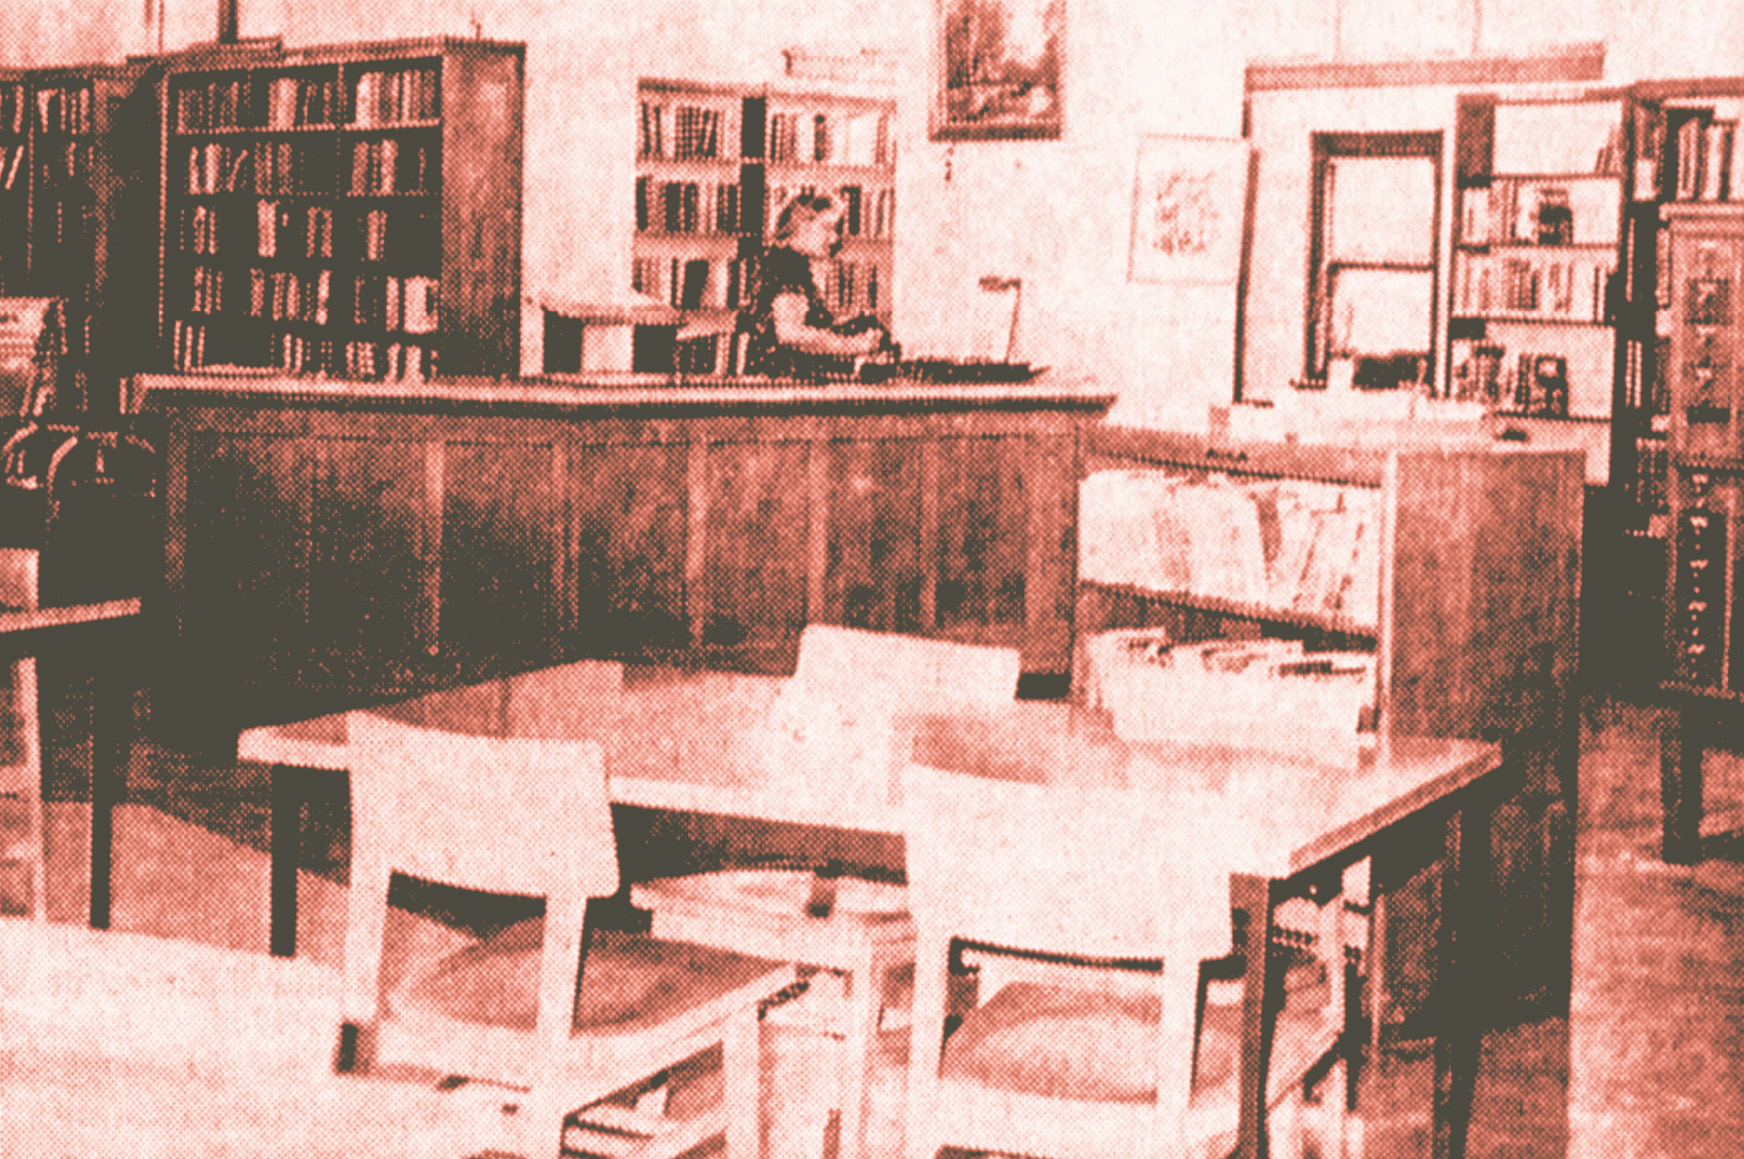 April 1964 interior view of Valparaiso's Carnegie Library, now site of the Porter County Public Library System's Valparaiso Branch.